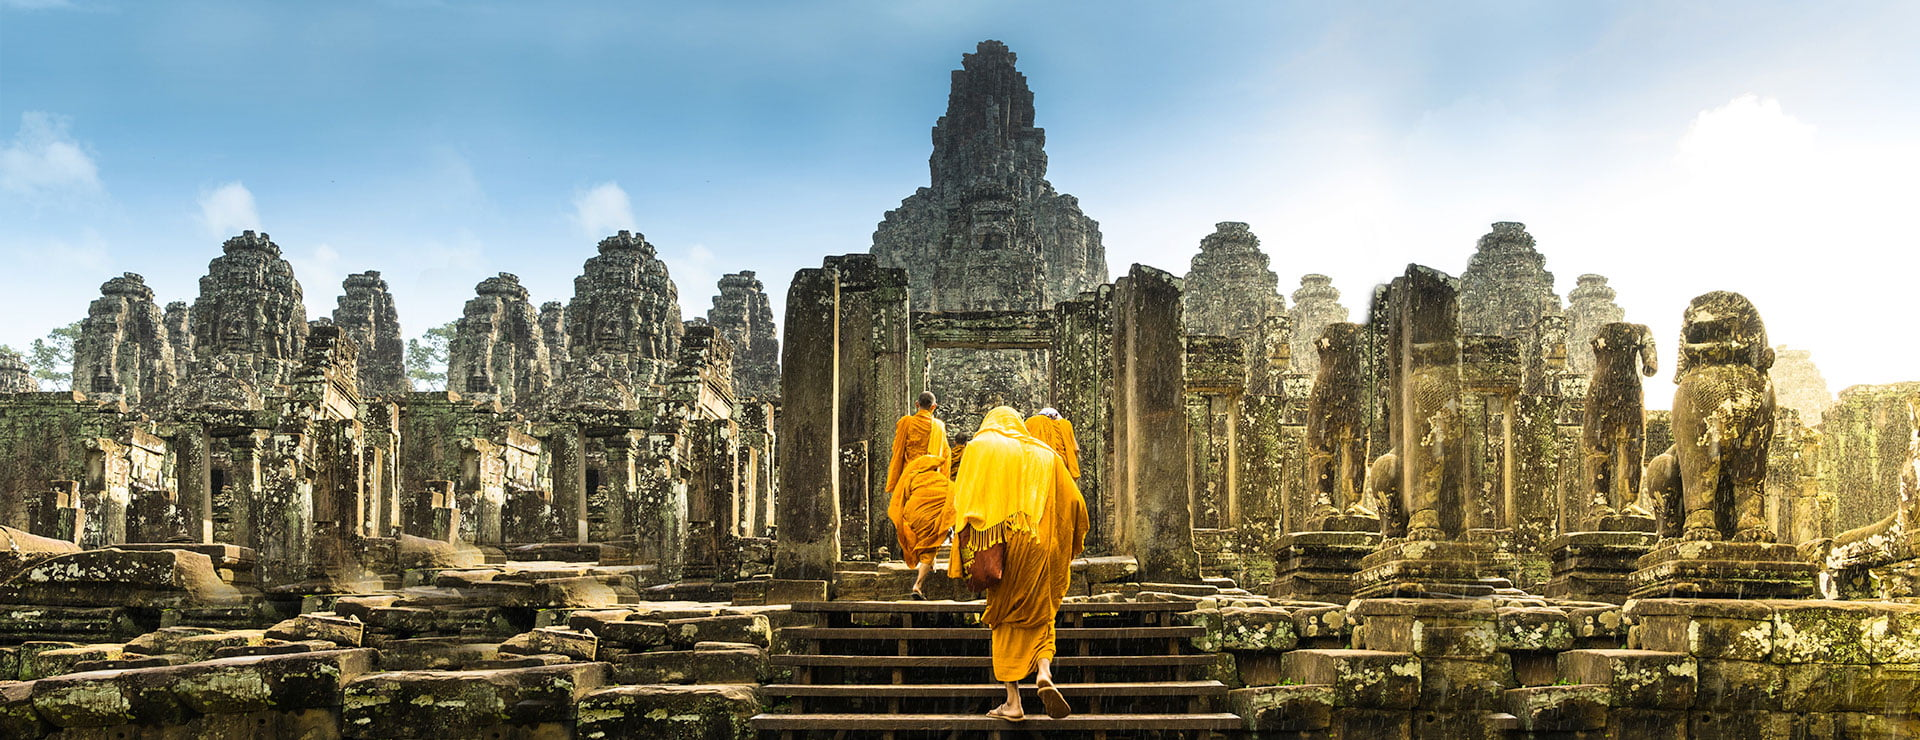 Mysterious Landmarks in Southeast Asia for your vacation choices